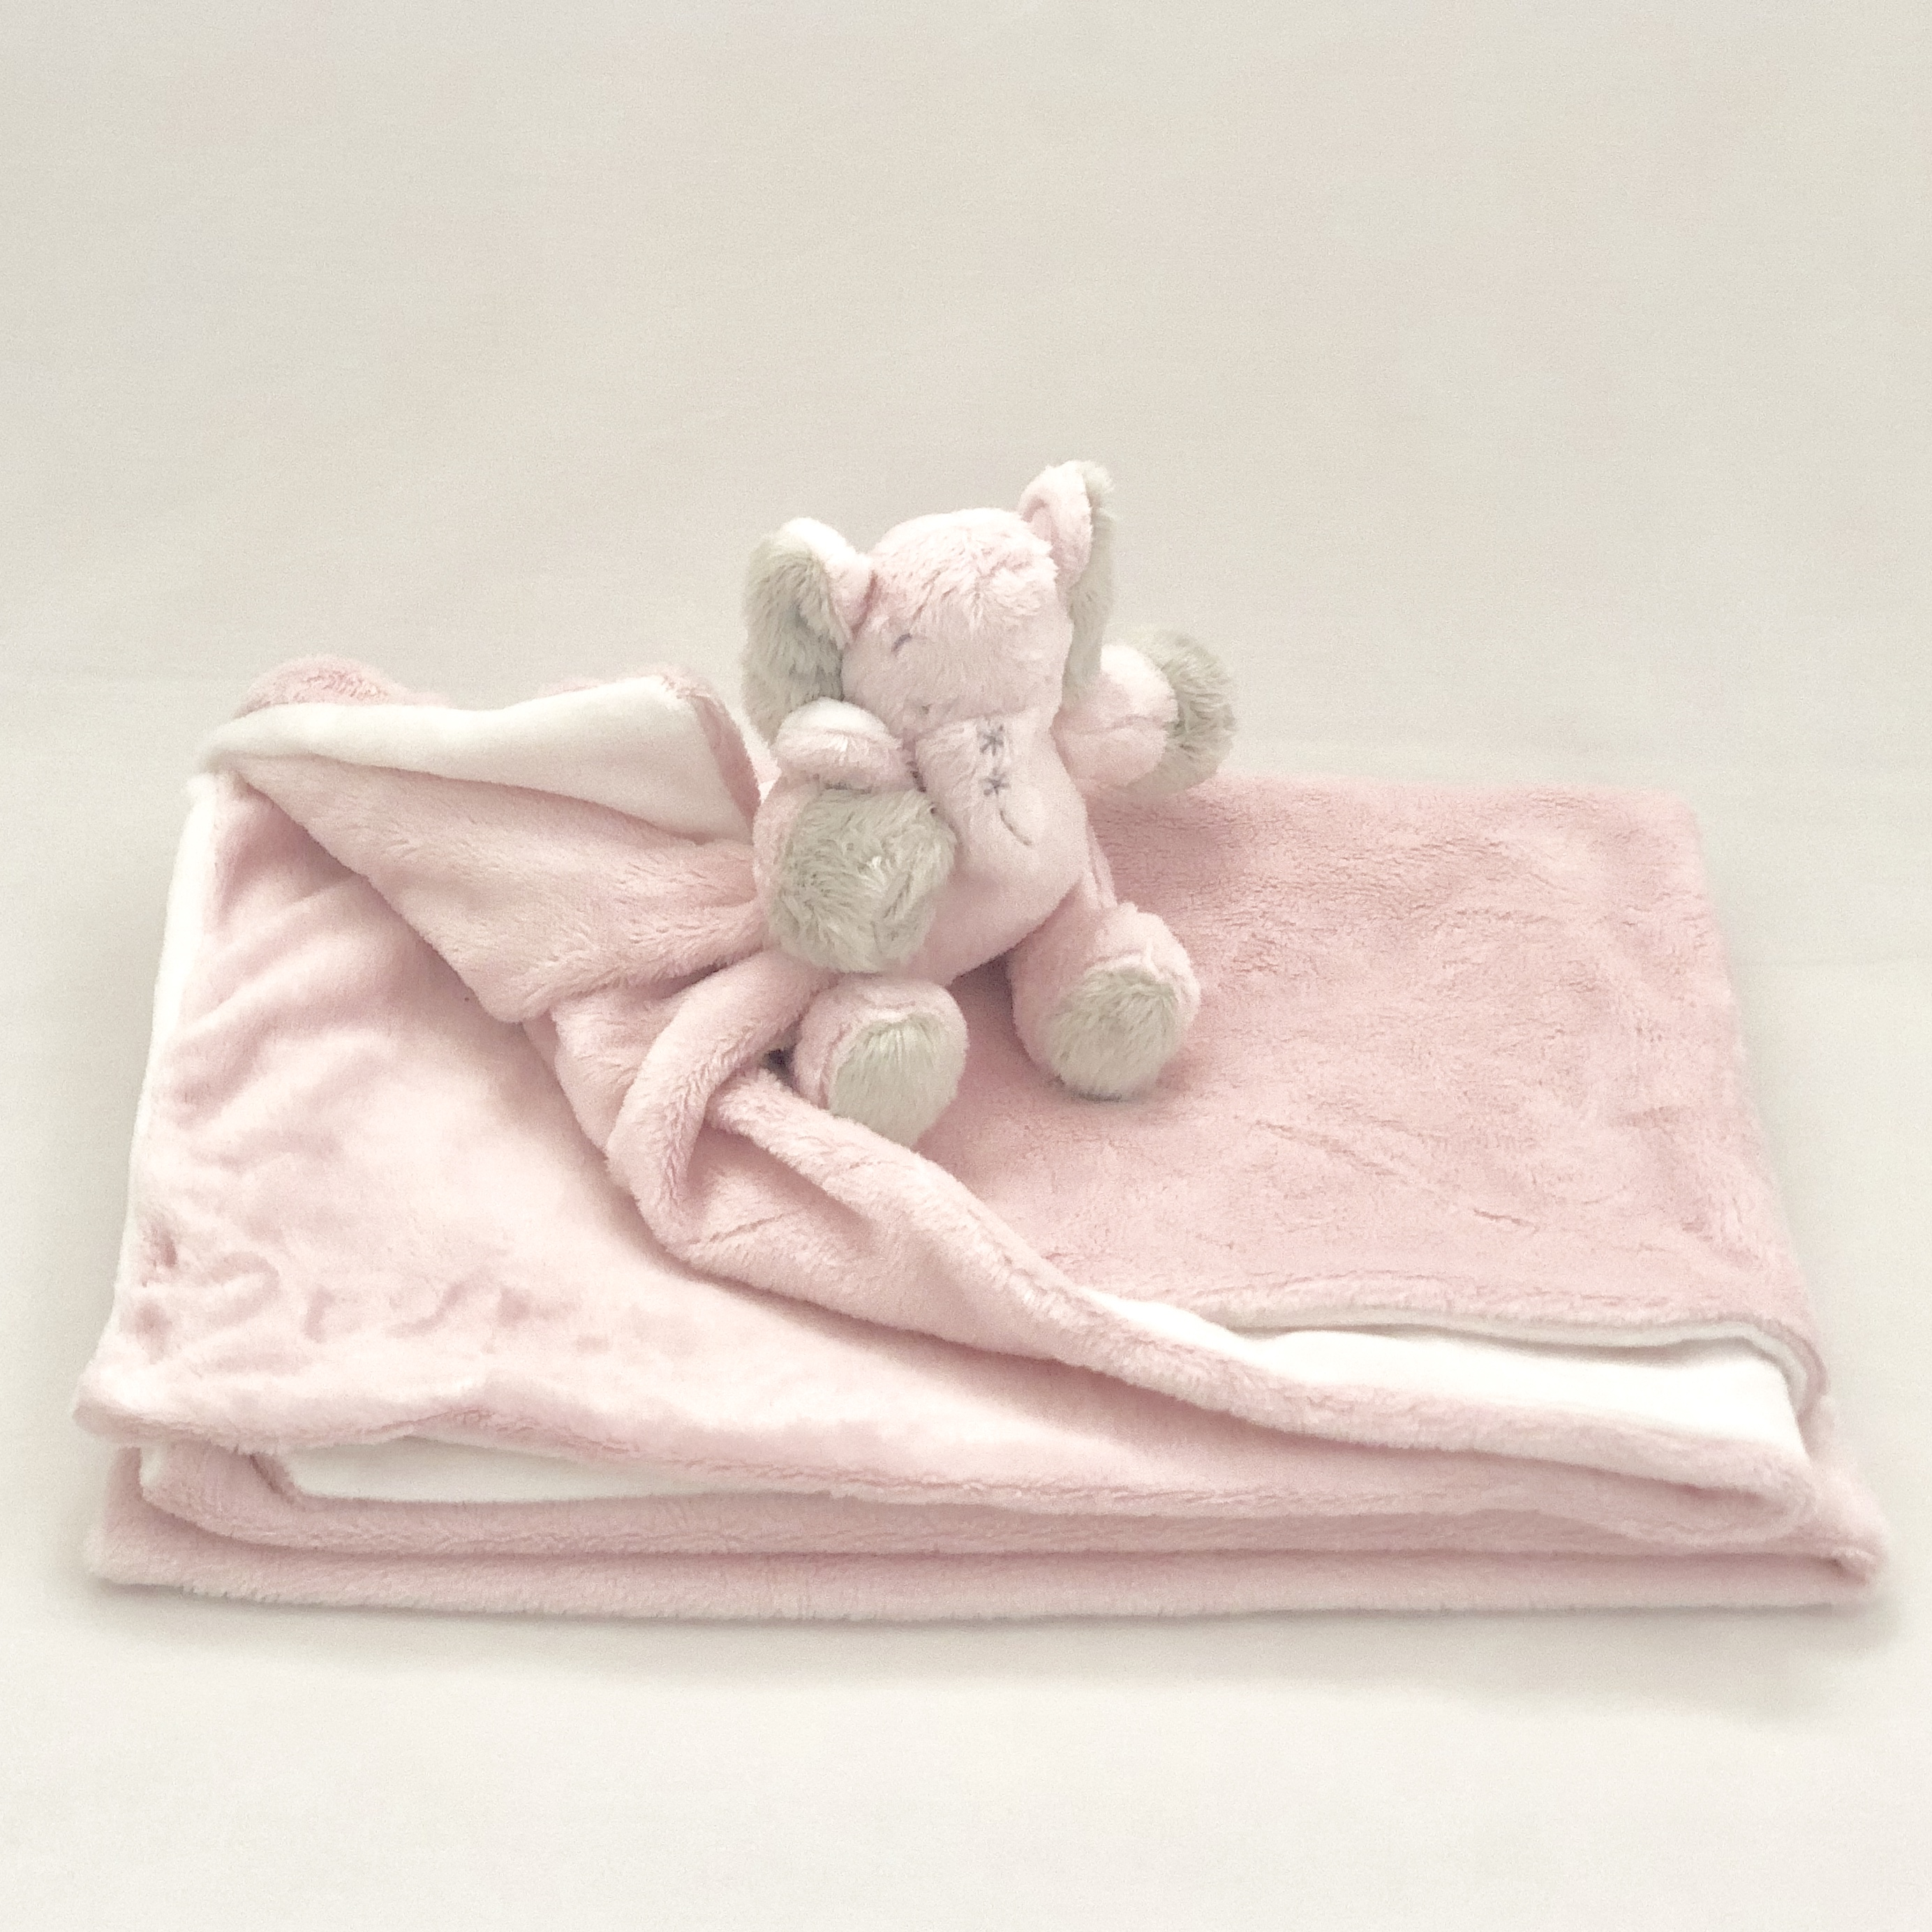 PINK AND WHITE BUNNY BABY BLANKET